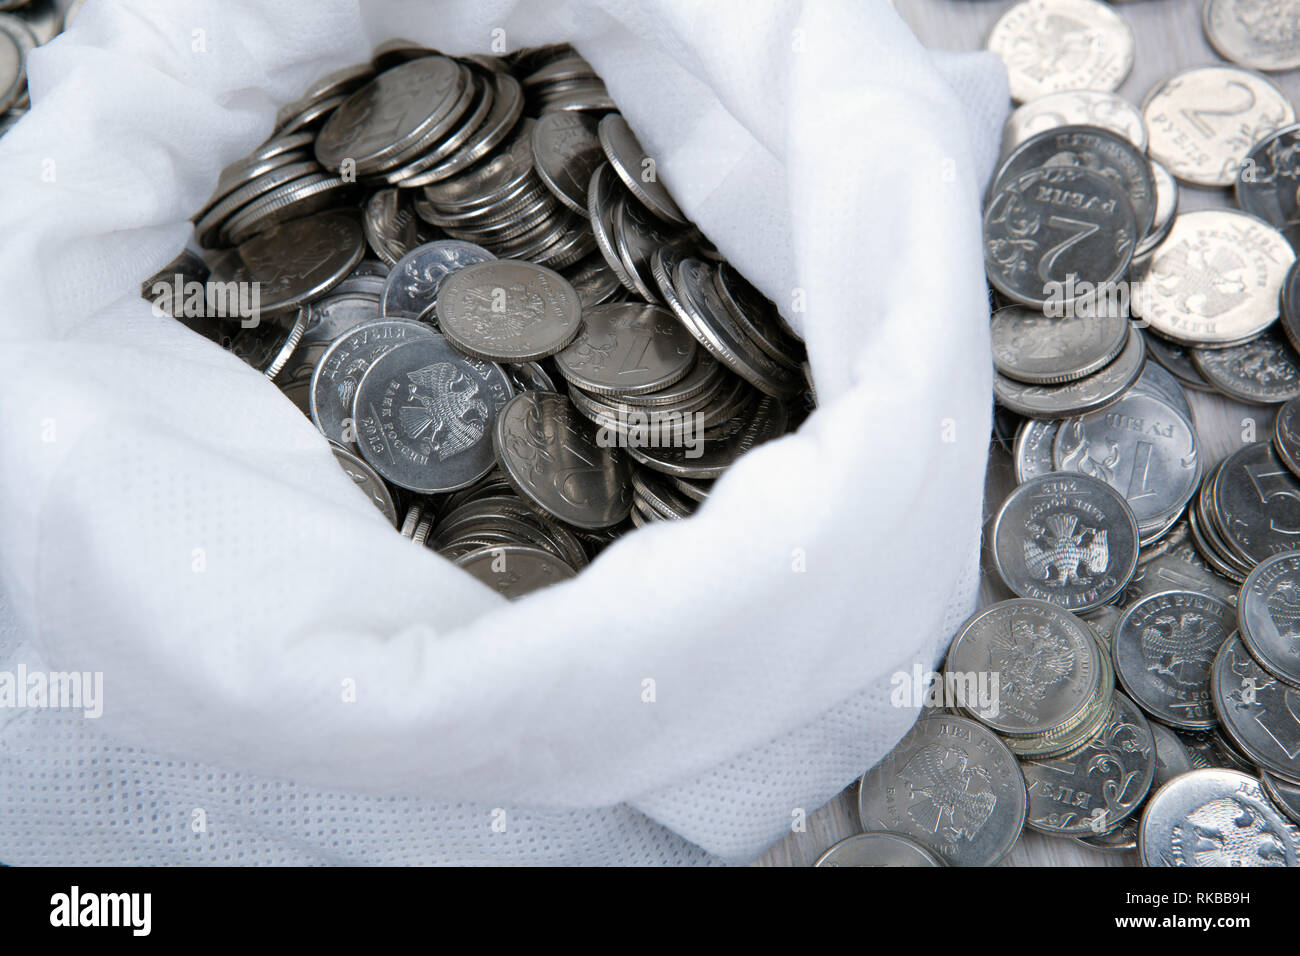 open white bag with russian ruble coins - Stock Image